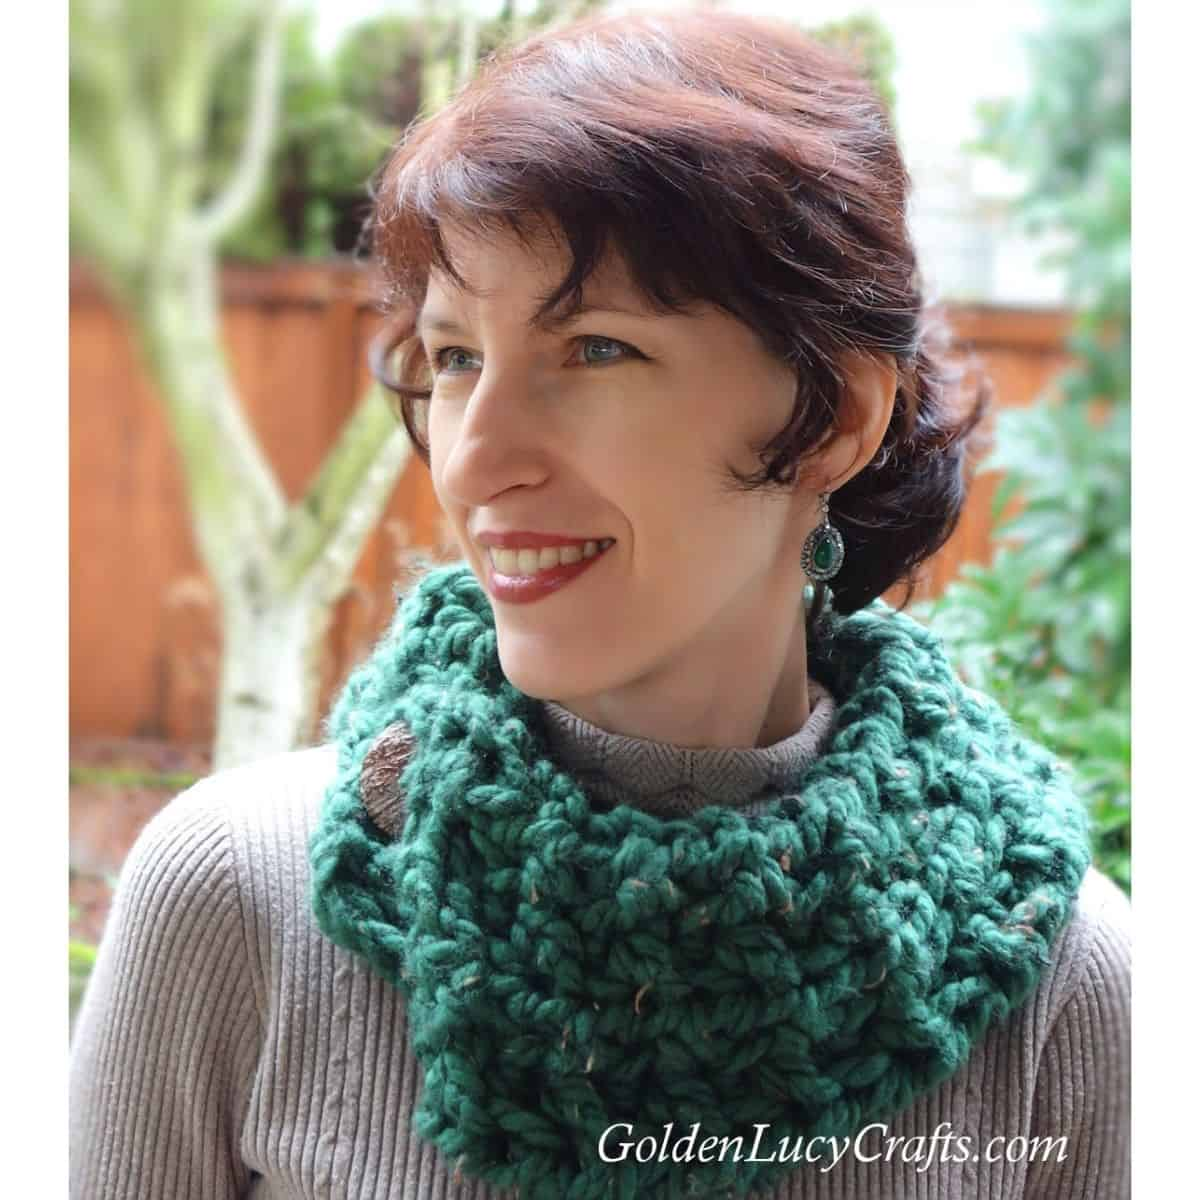 Model dressed in green cowl.